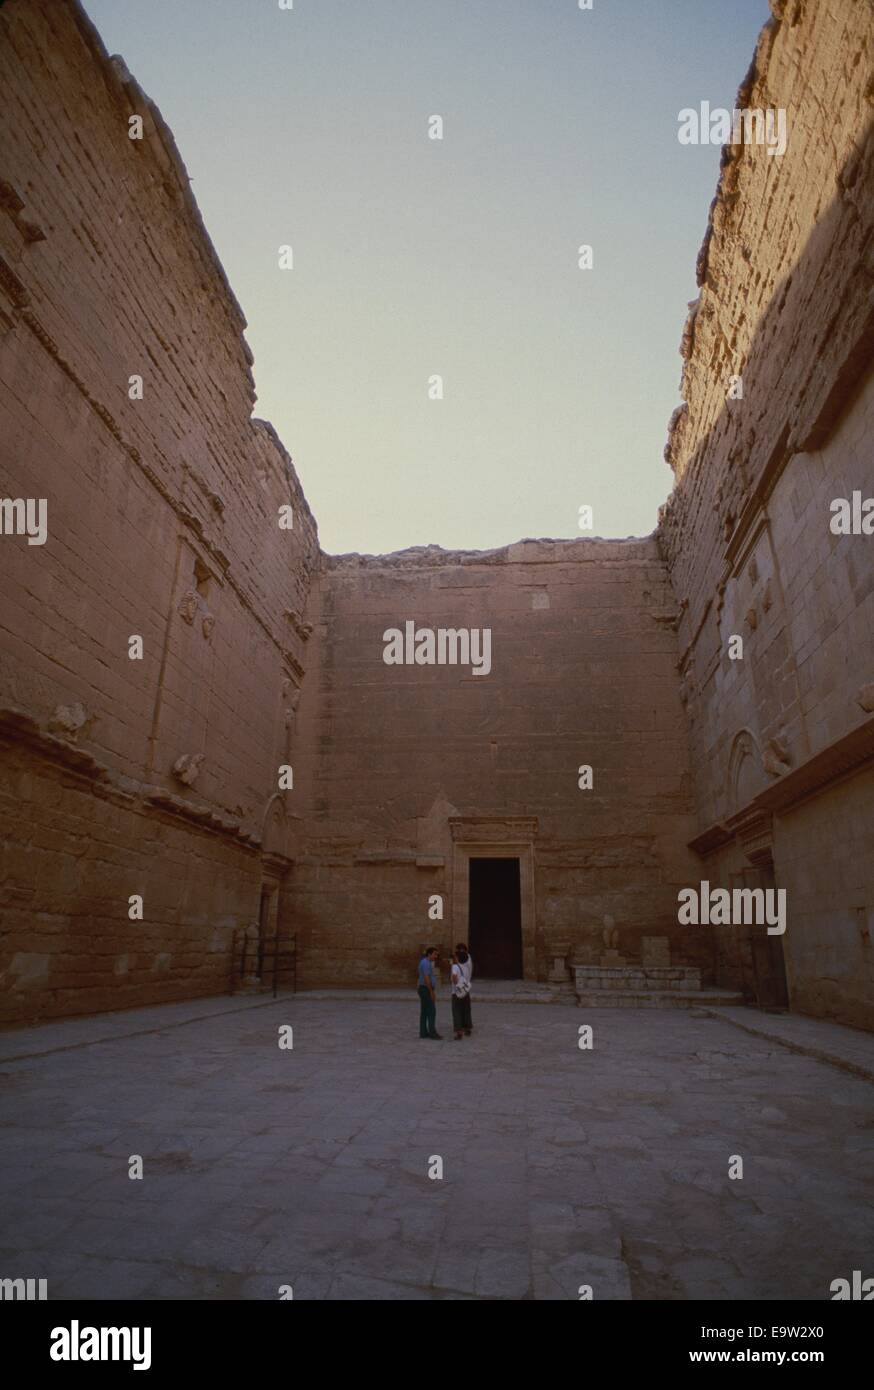 The ancient 3rd century BC pre-Christian temple complex of Hatra in NW Iraq, is now at risk after being taken by - Stock Image